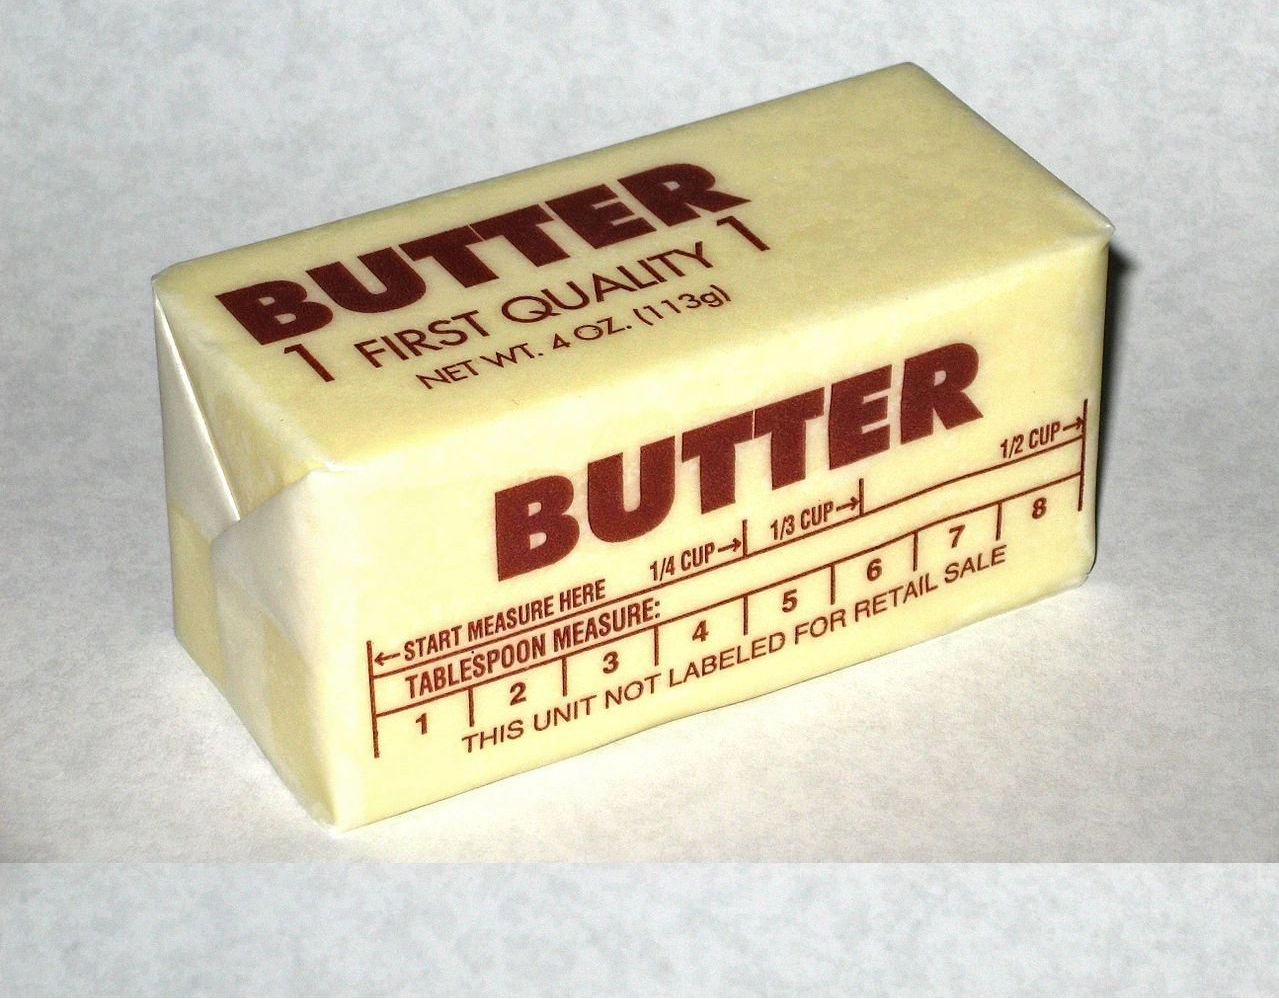 Butter-1280px (CC0 license)